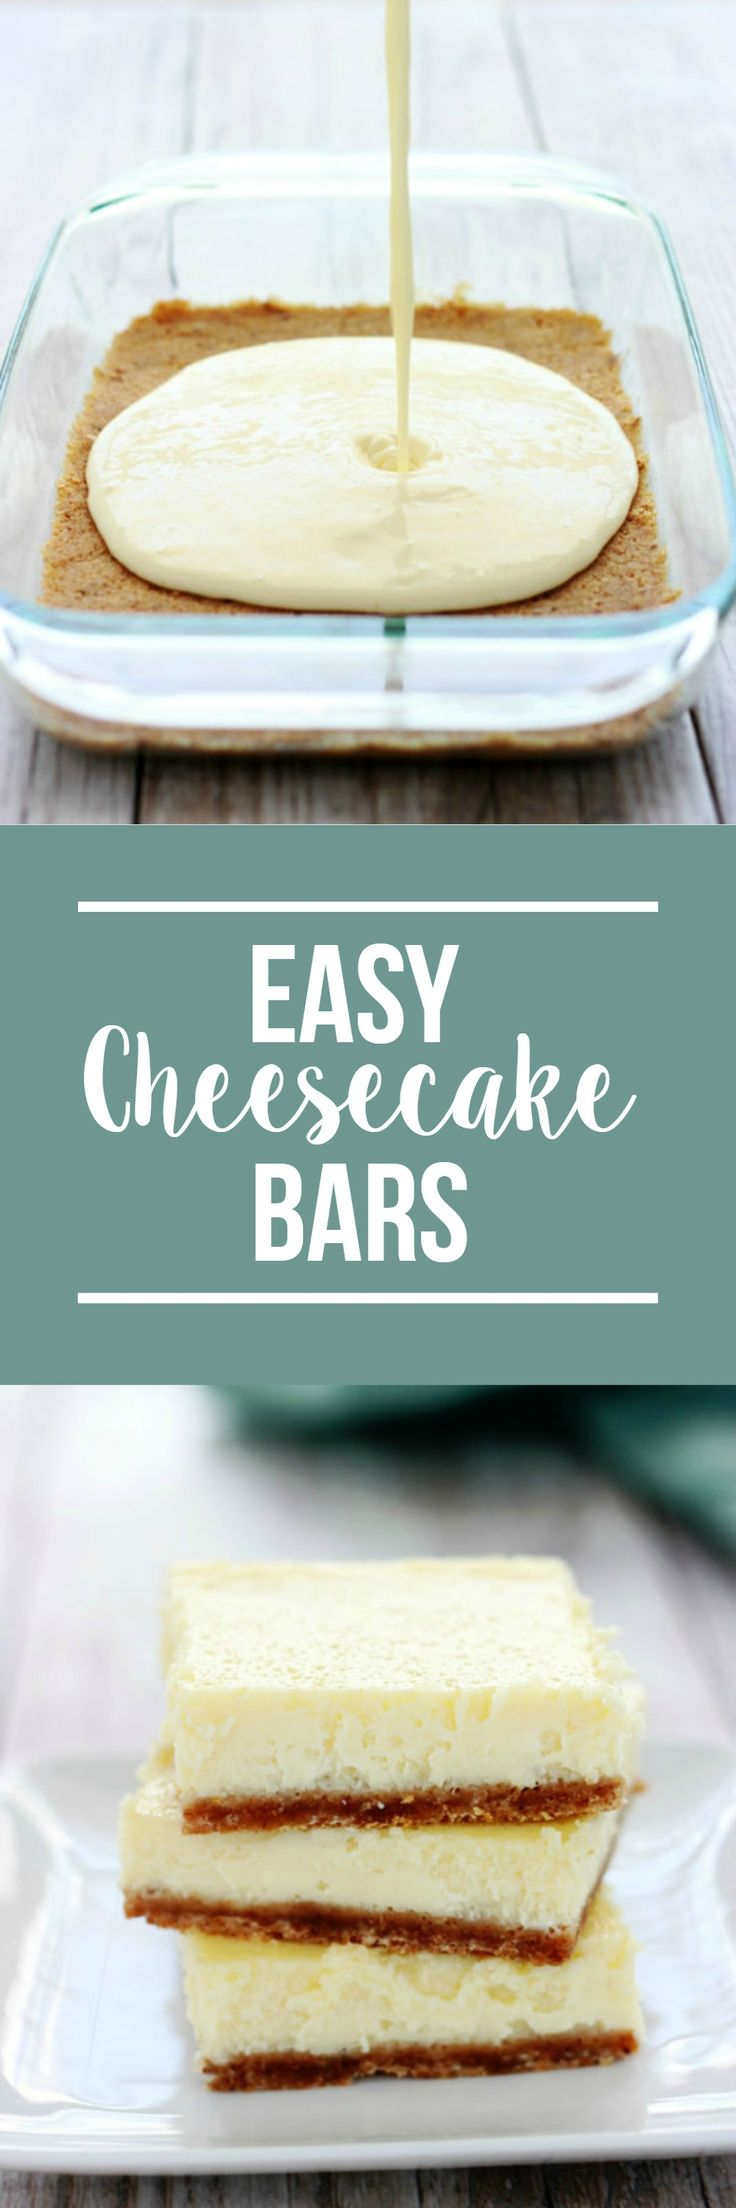 Easy Cheesecake Bars                                                                                                                                                                                 More